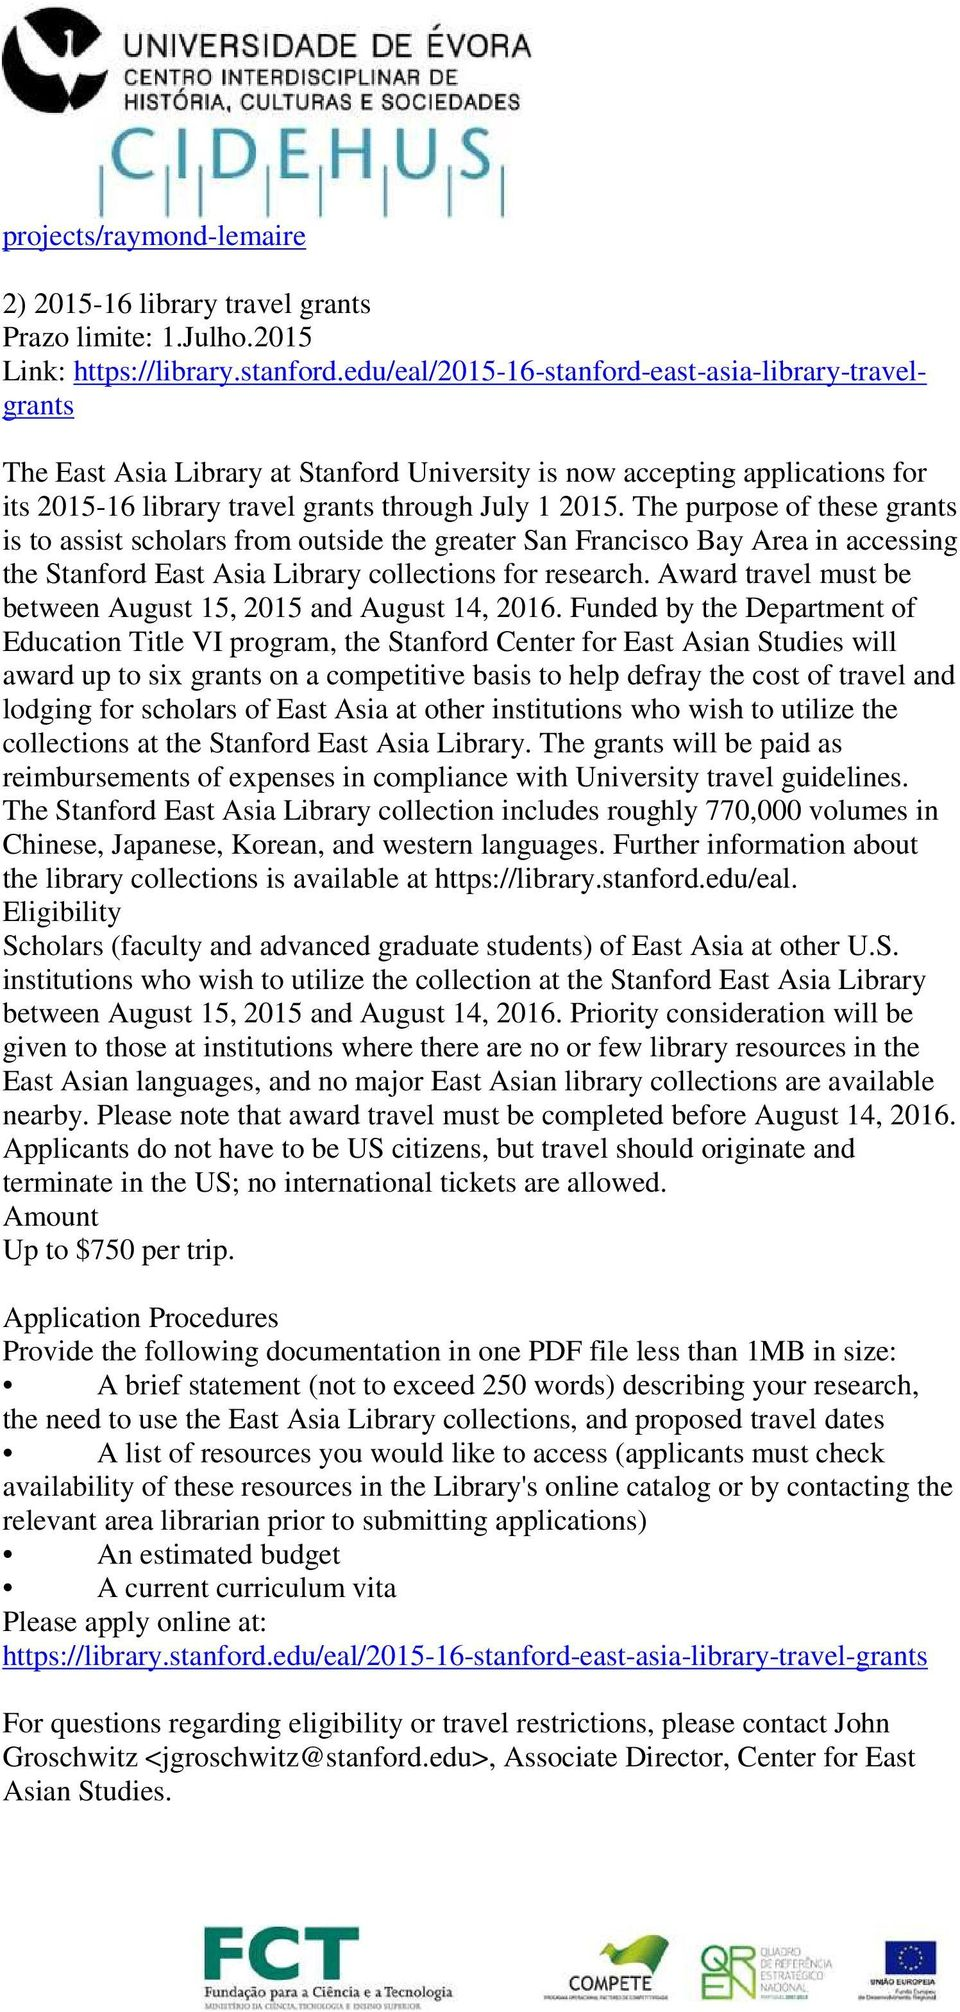 The purpose of these grants is to assist scholars from outside the greater San Francisco Bay Area in accessing the Stanford East Asia Library collections for research.